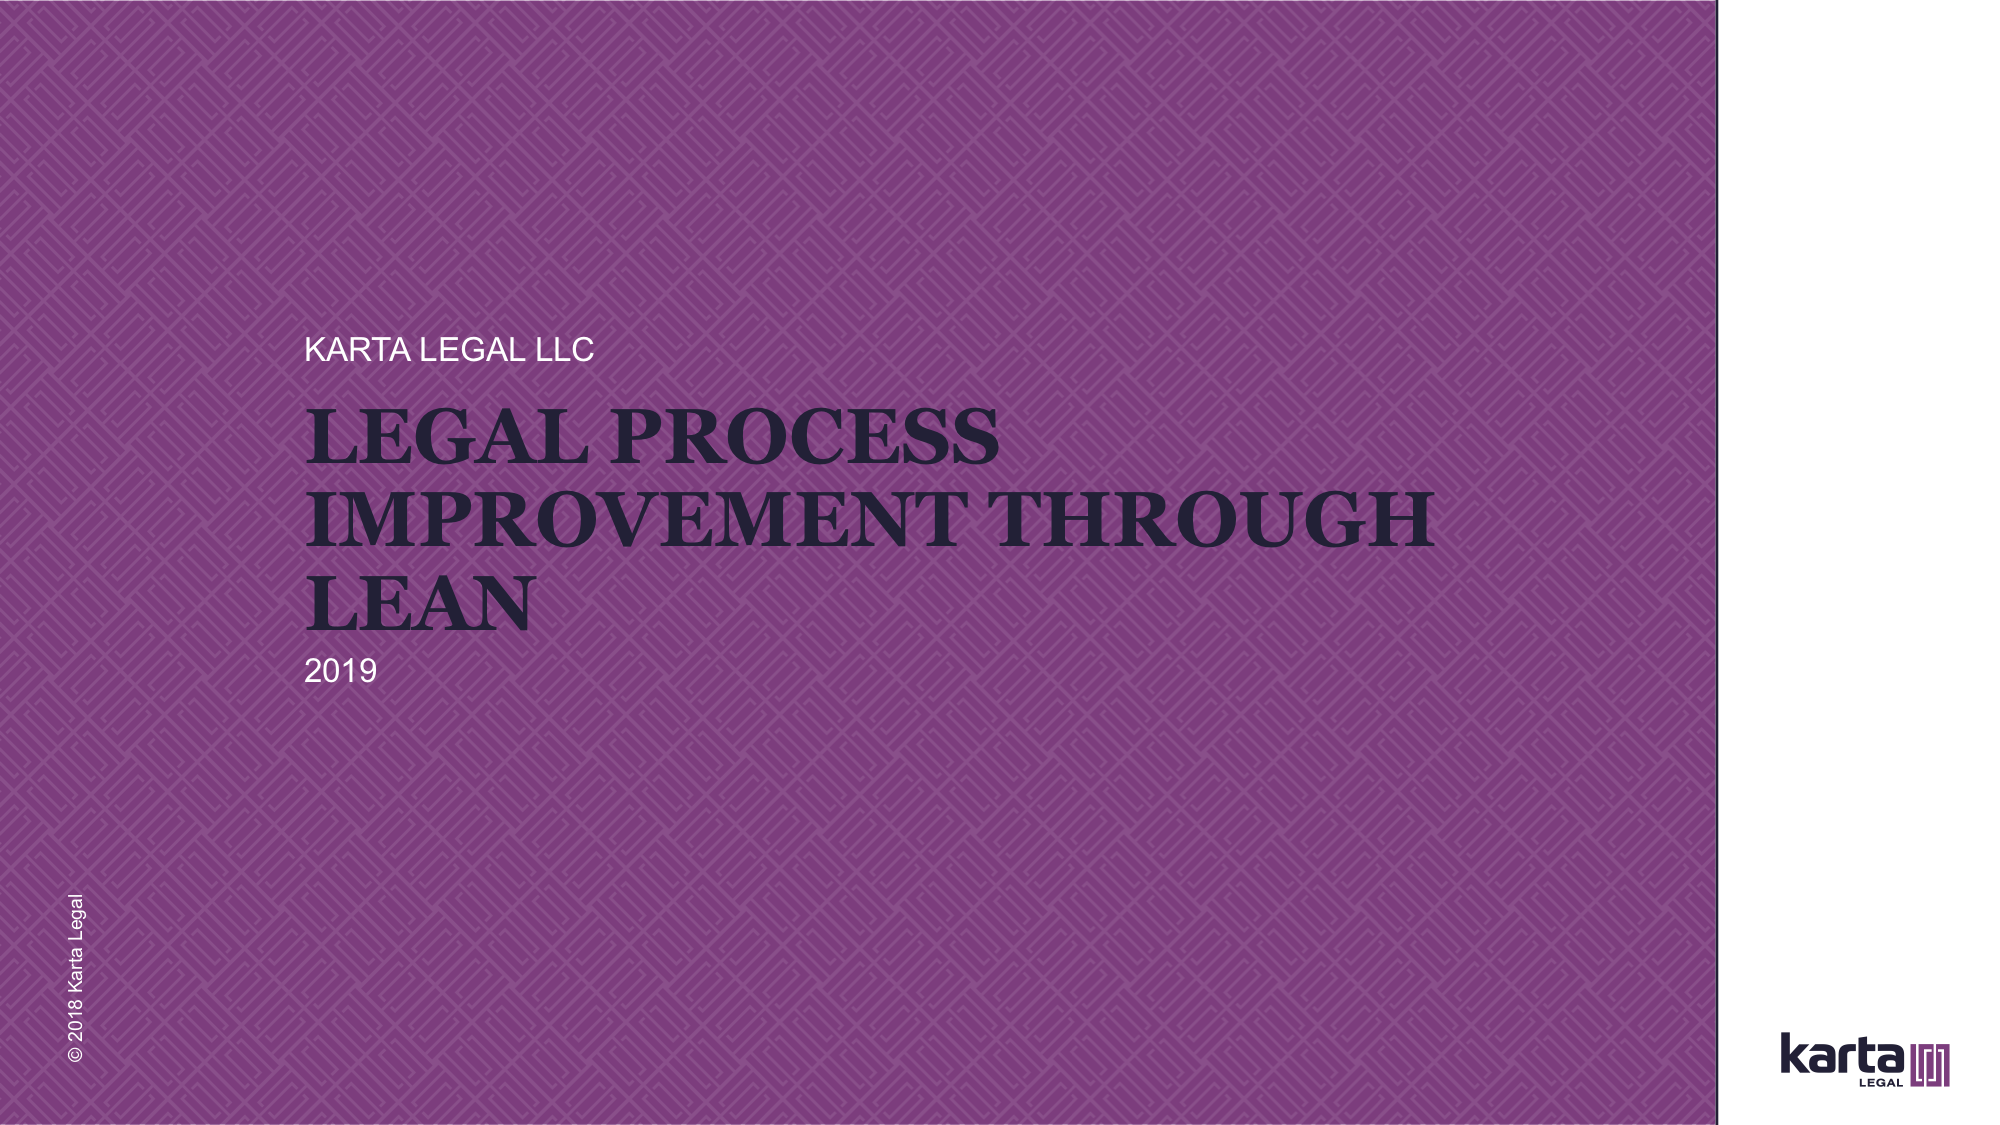 Legal Process improvement through Lean